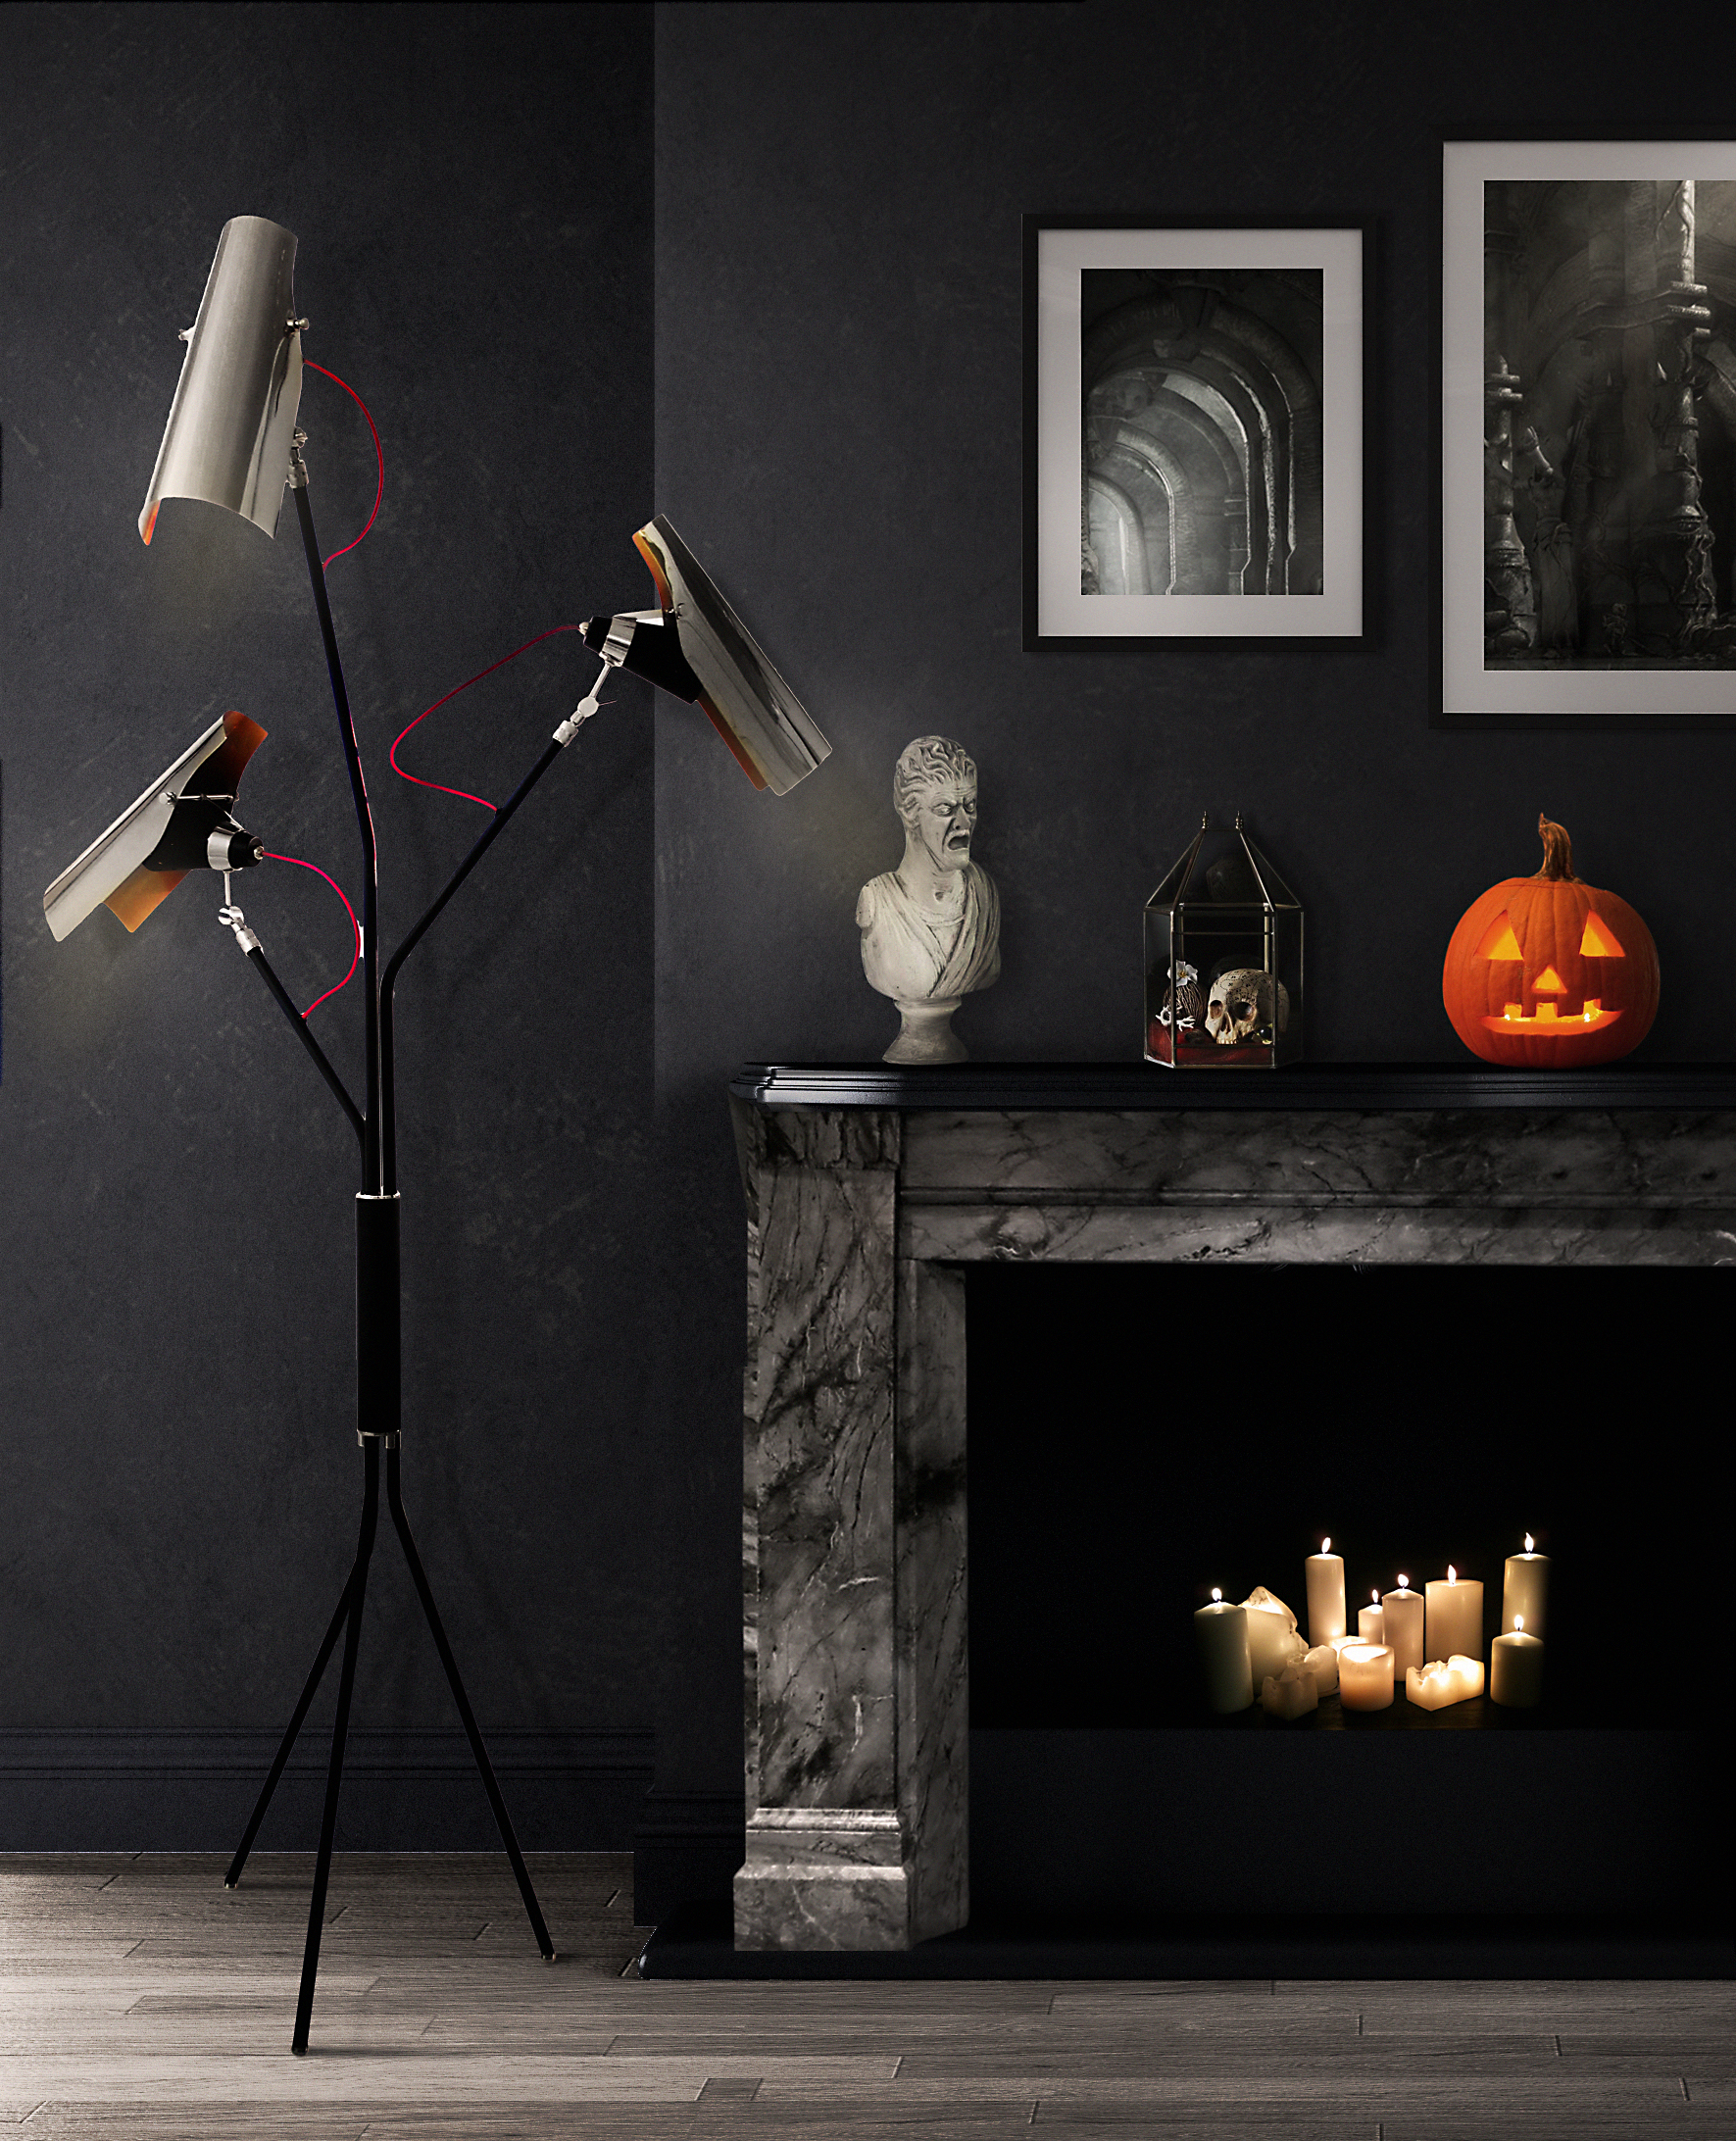 jackson floor lamp jackson floor lamp Celebrate Halloween With Jackson Floor Lamp Celebrate Halloween With Jackson Floor Lamp 2